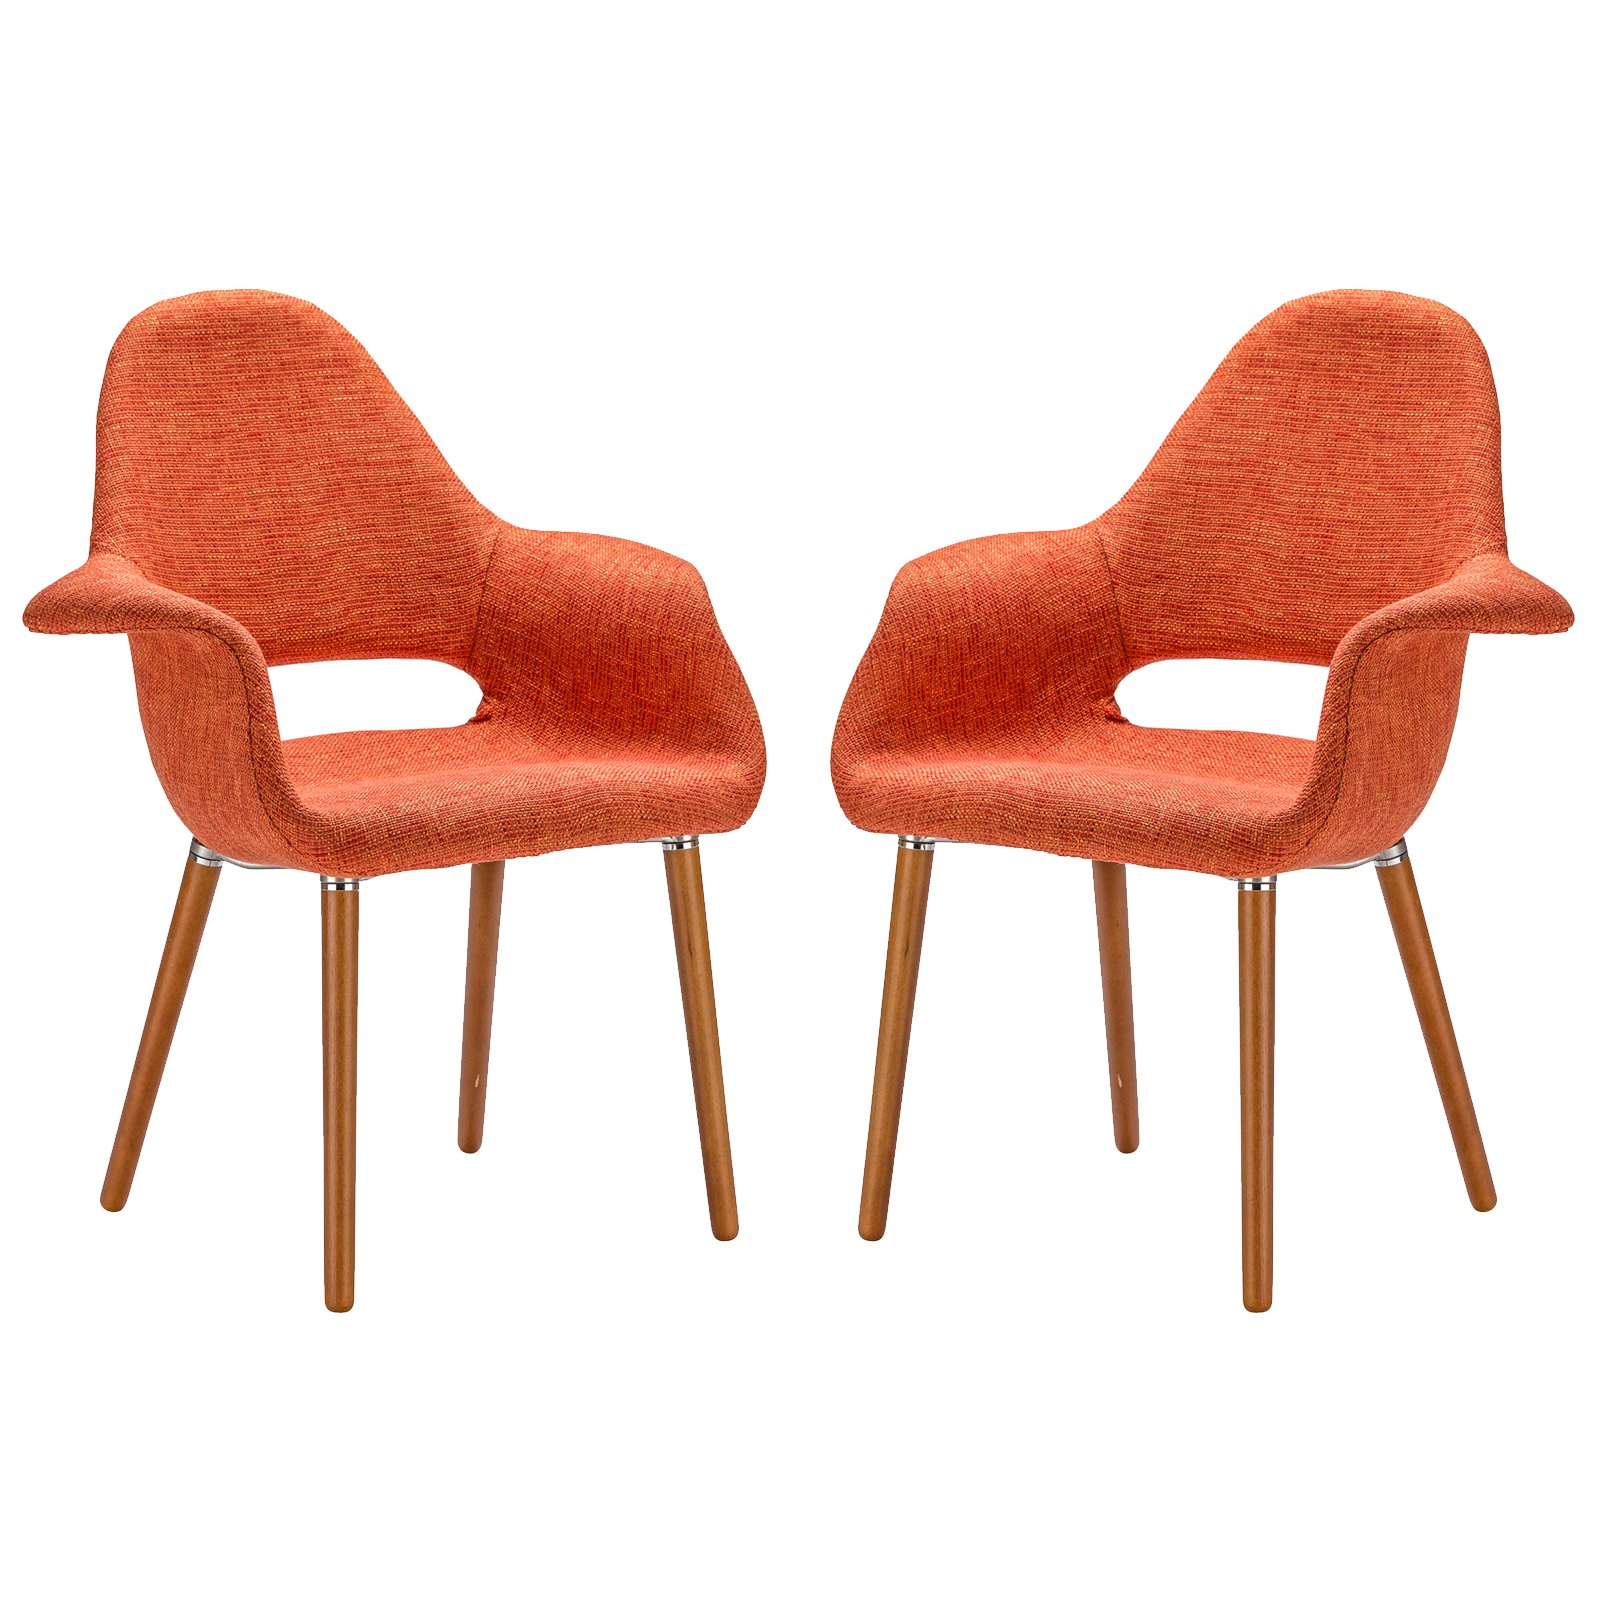 Poly and Bark Barclay Dining Chair in Orange (Set of 2) by Poly and Bark (Image #1)